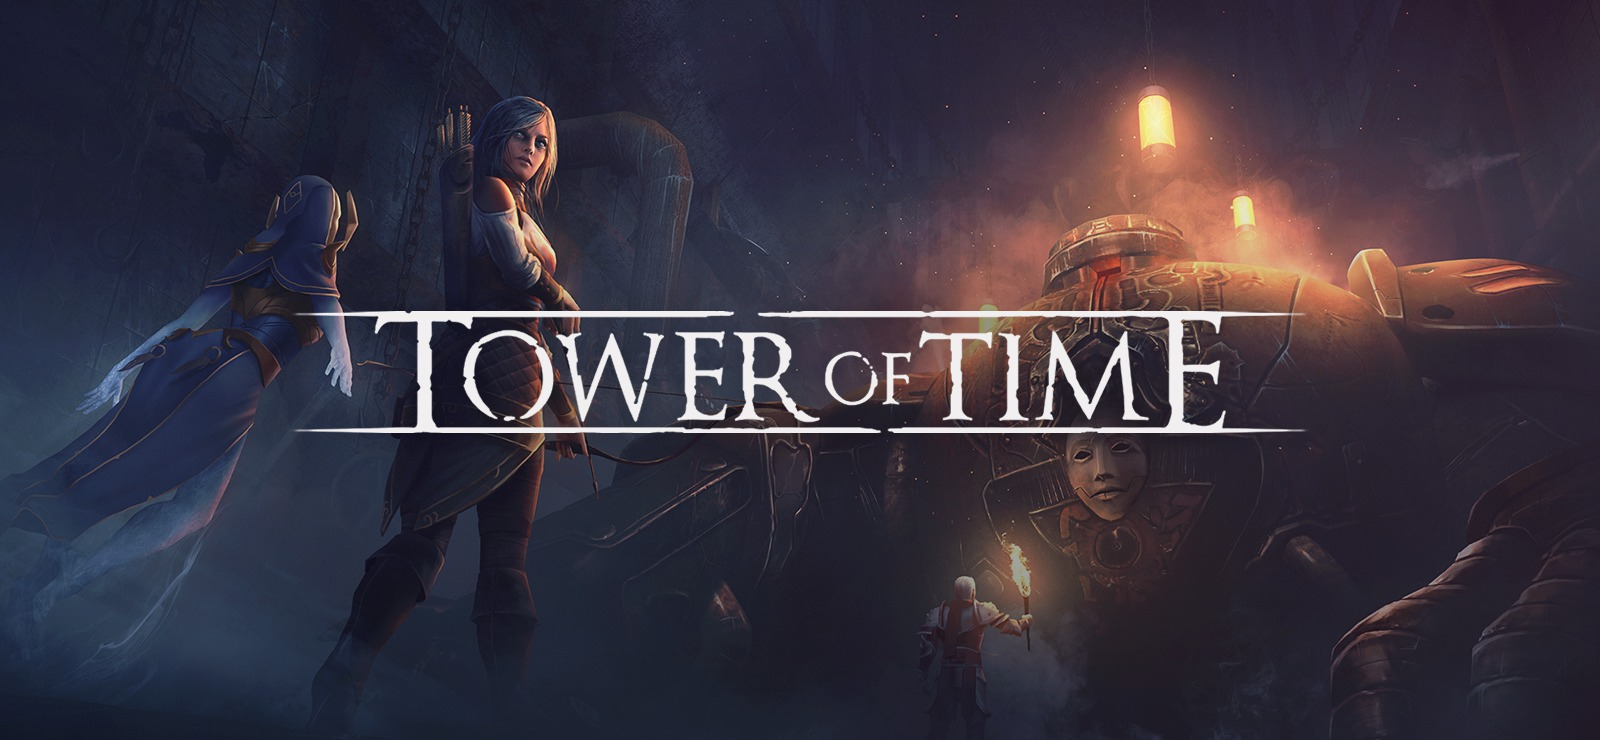 Tower of Time (2018)